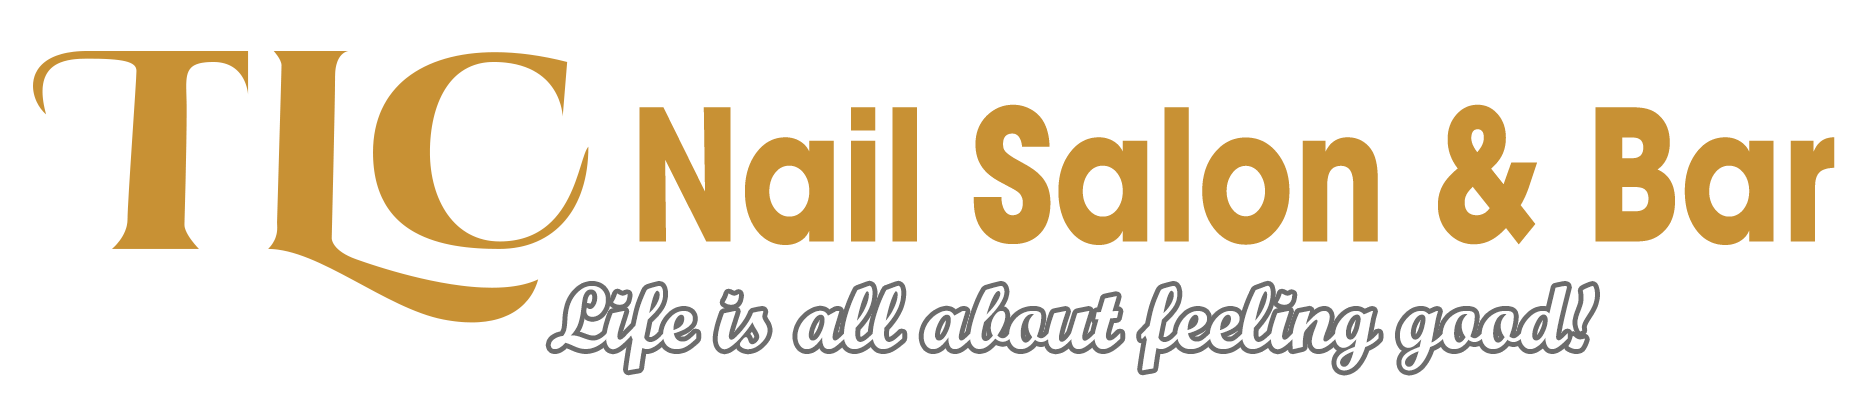 TLC Nail Salon & Bar - All the info you need to know about European Facial  - nail salon 89146